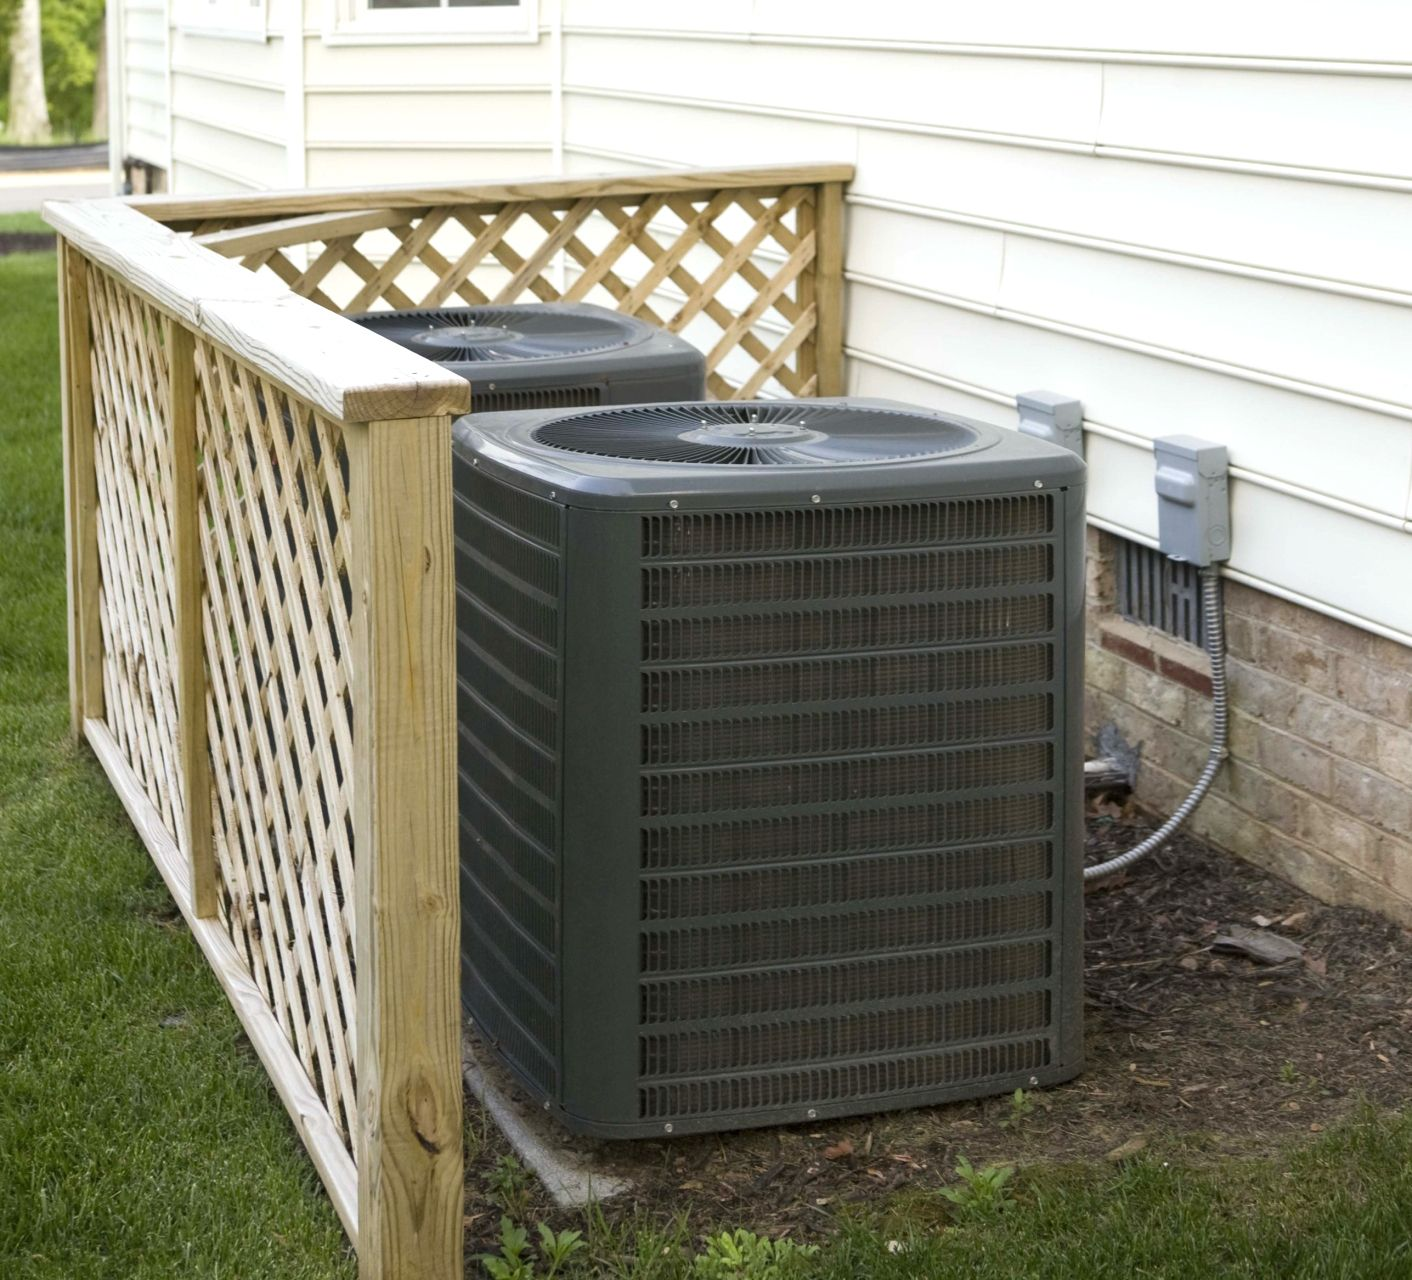 clearing away all leaves and debris from your ac condenser unit is